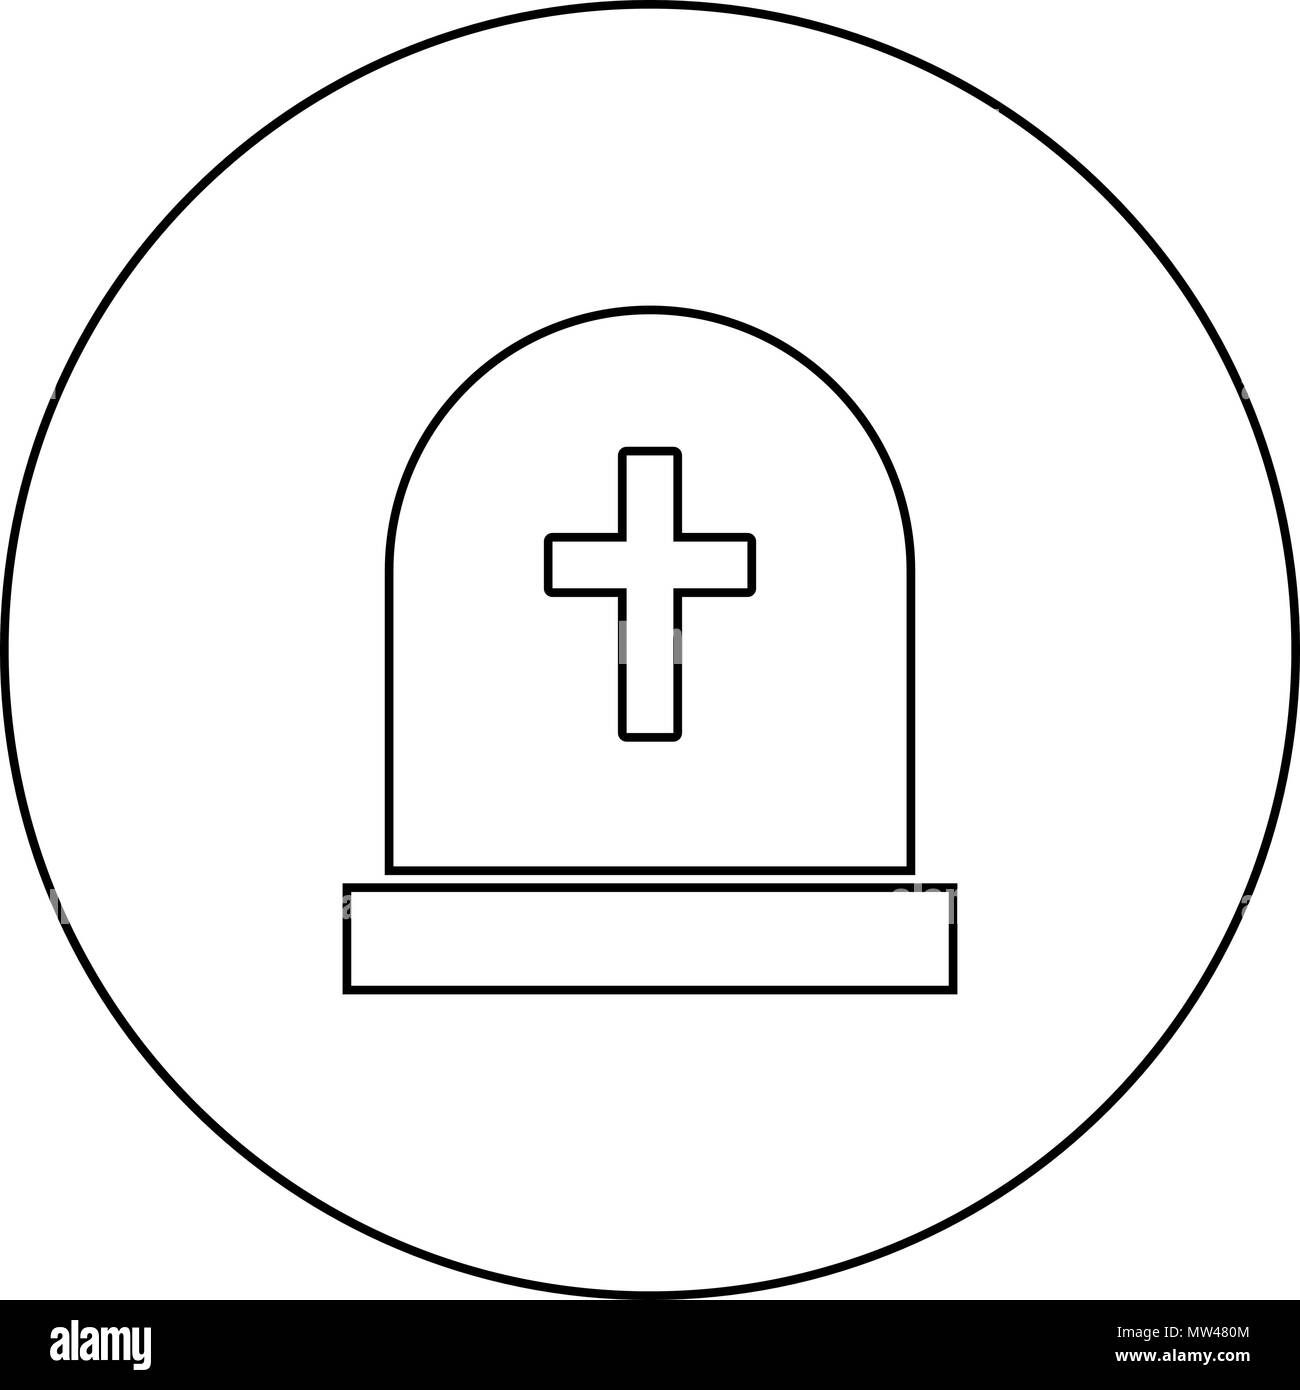 Tomb stone black icon in circle outline vector I isolated - Stock Vector